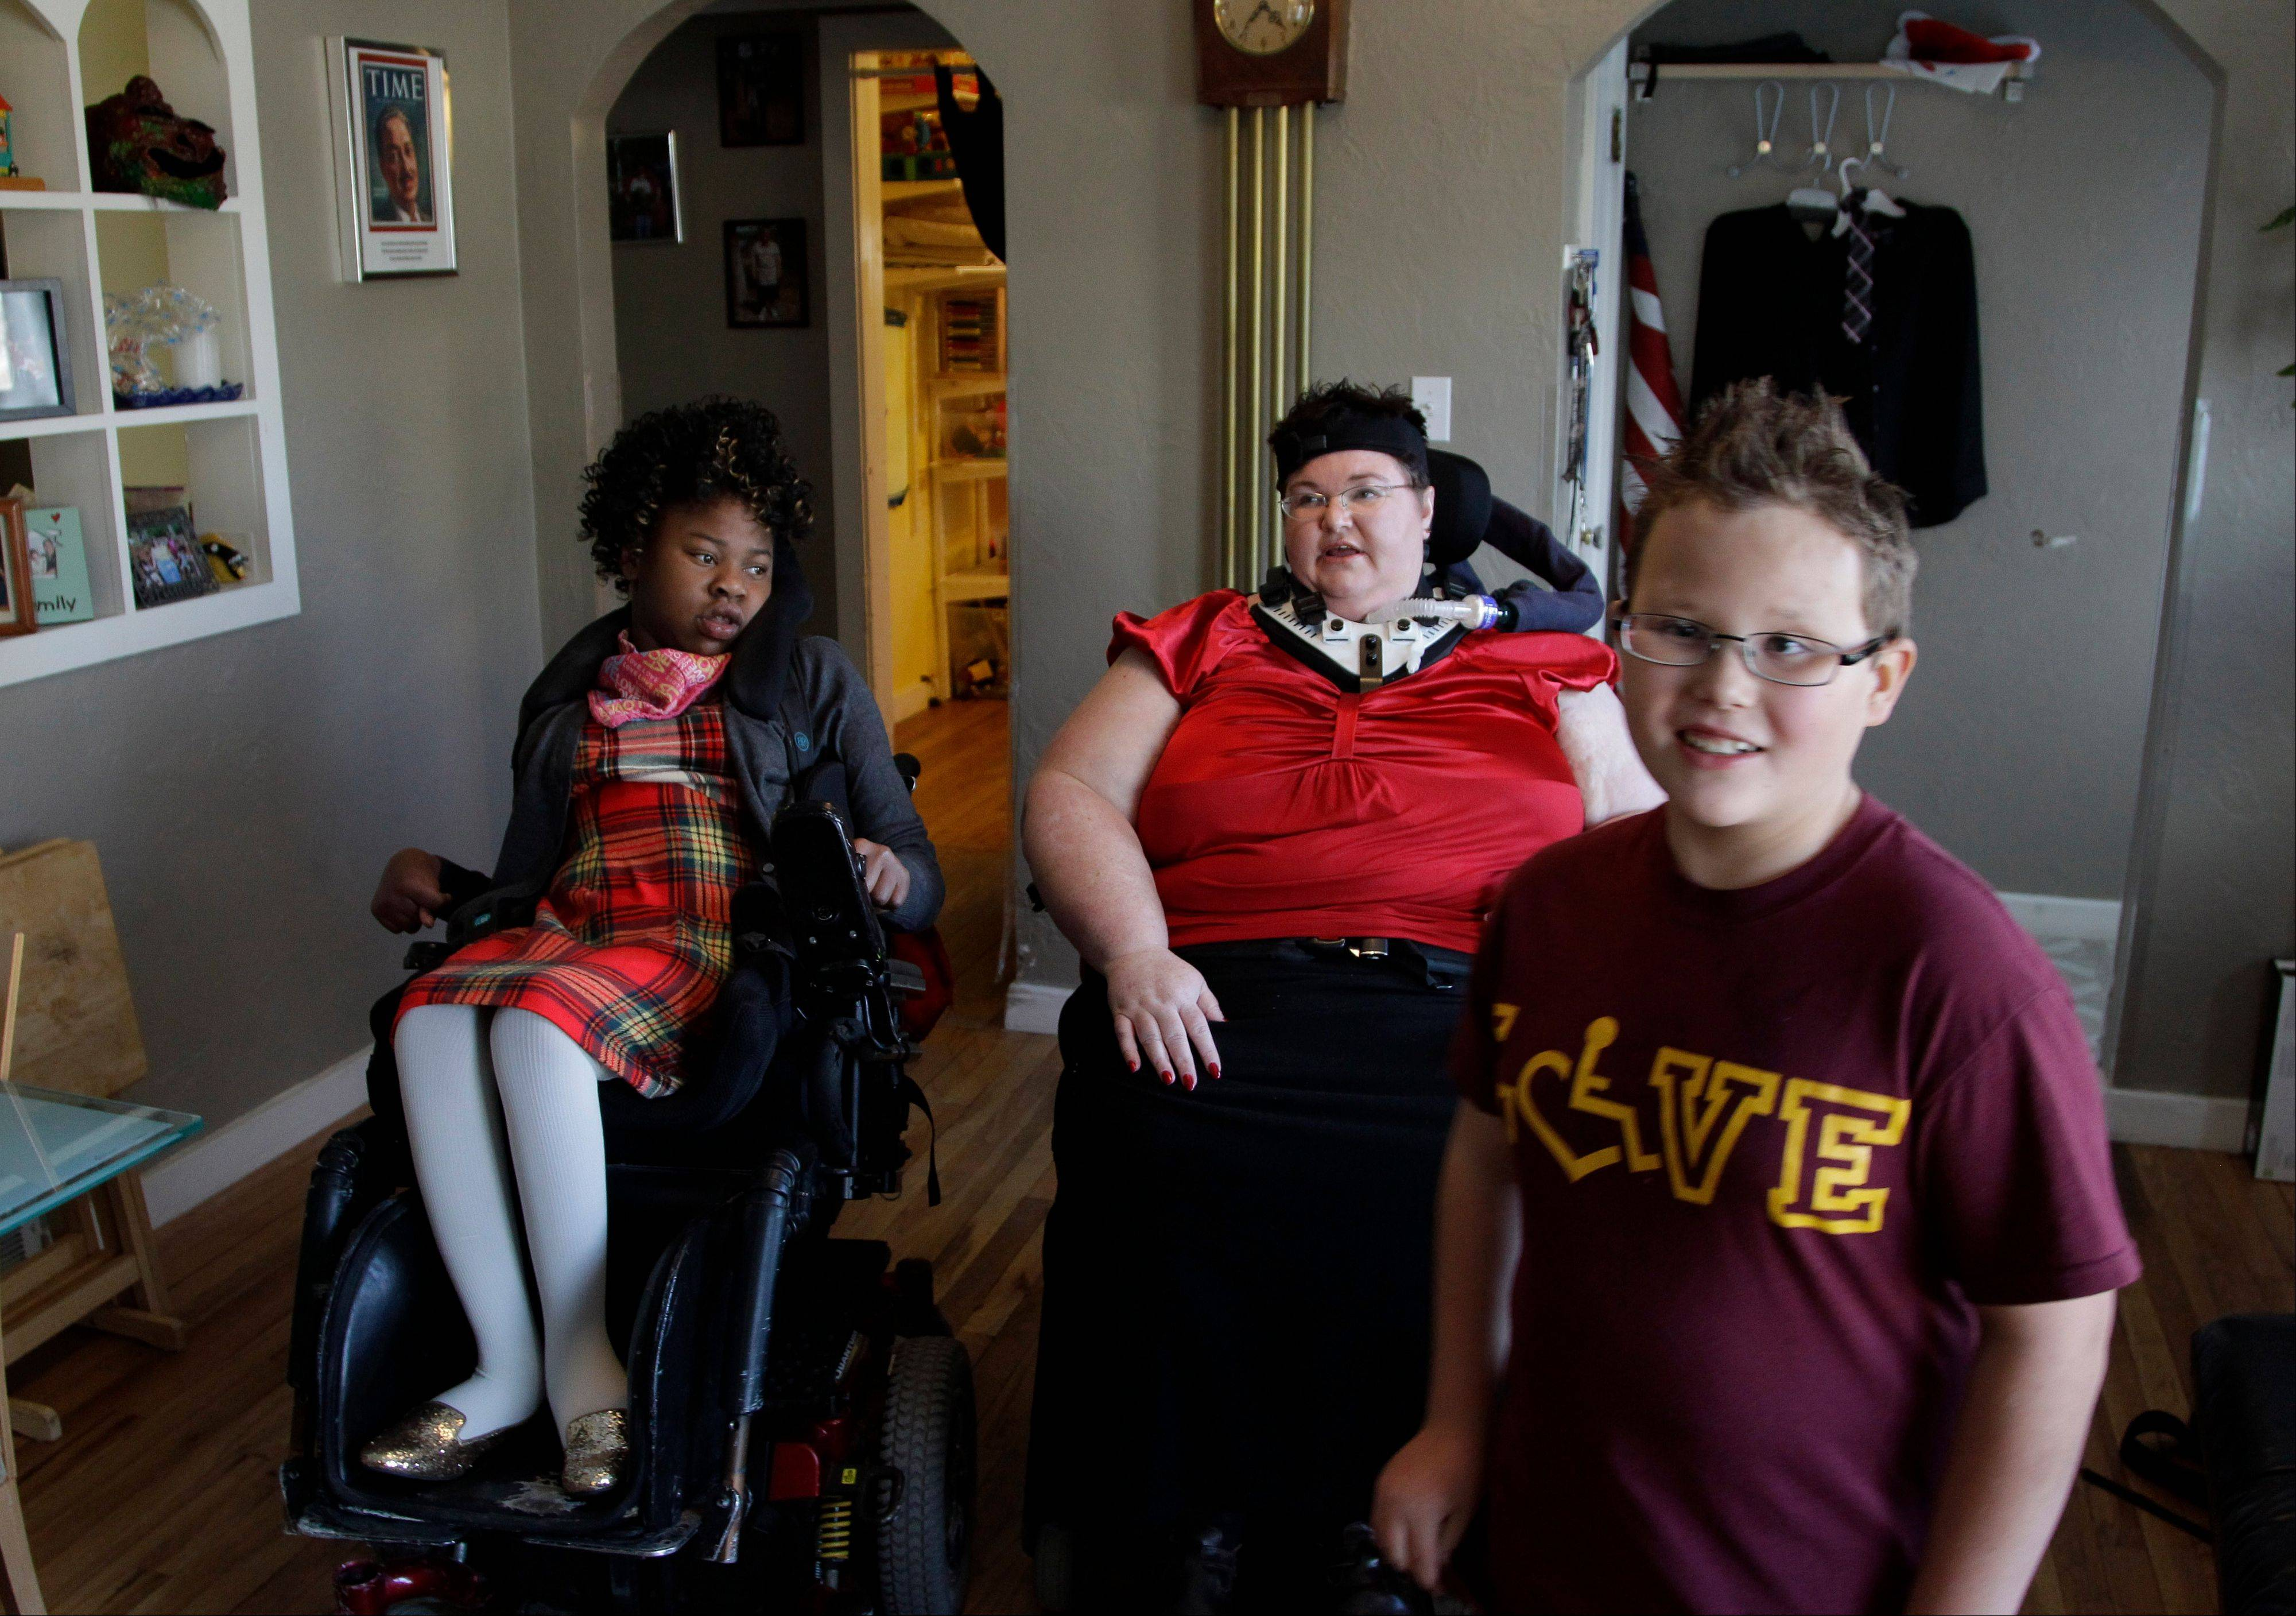 Carrie Ann Lucas, center, sits with her adopted daughter Adrianne, 13, as her adopted son Anthony, 11, walks past them as he gets himself ready in the morning at their home in Windsor, Colo.